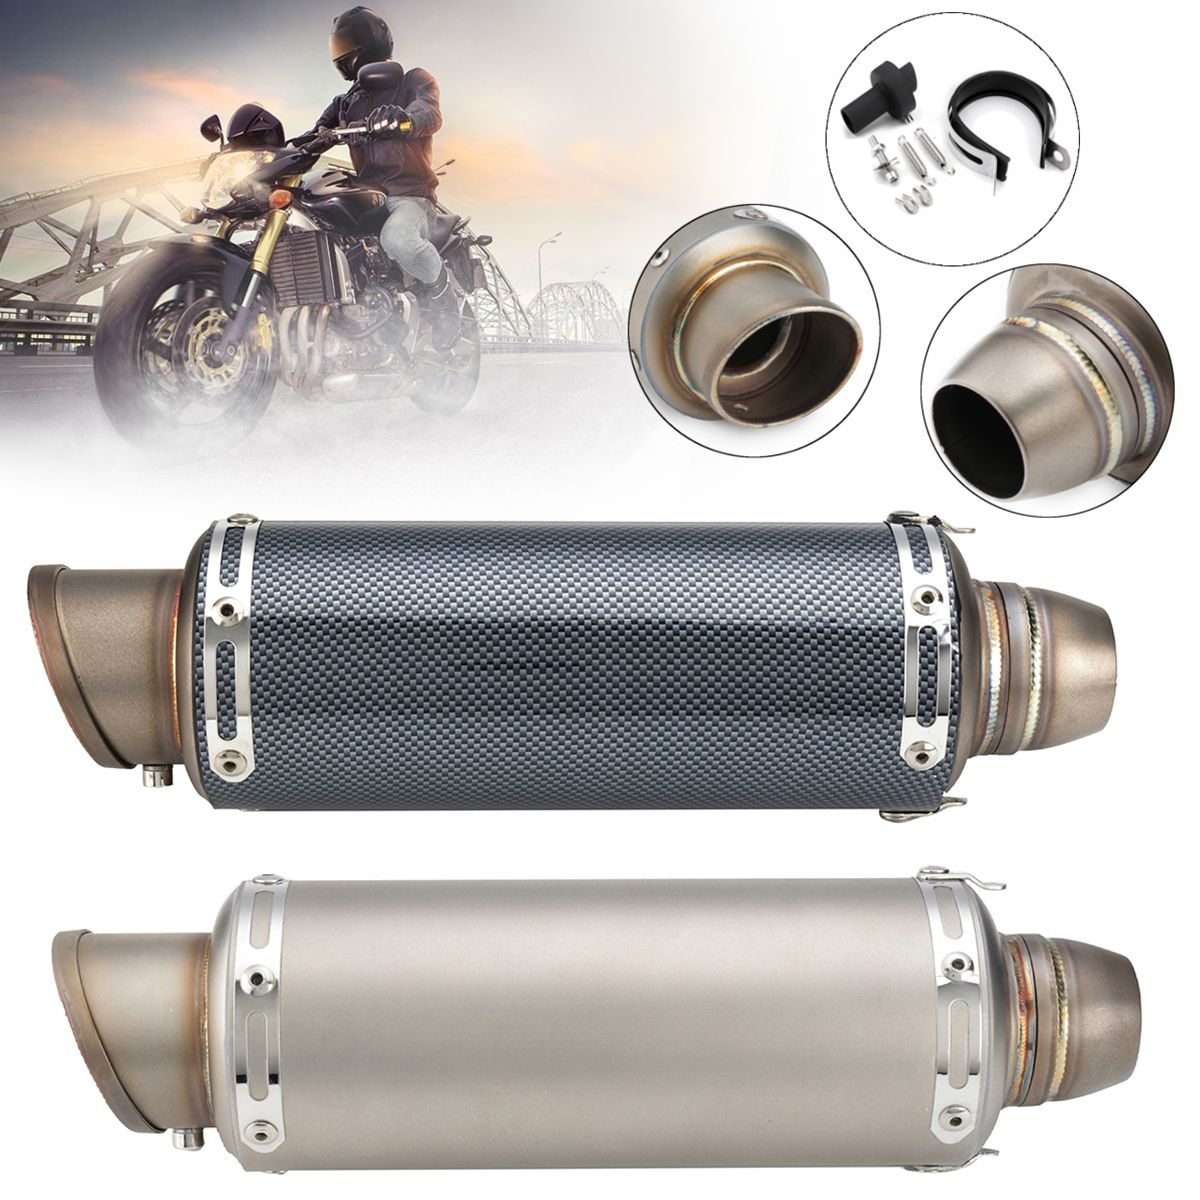 38~51mm Universal Carbon Fiber Titunium Stainless Steel Exhaust Muffler Pipe Kit For Motorcycle ATV Dirt Bike Scooter Quad laser mark motorcycle modified muffler sc carbon fiber exhaust pipe for bmw r1200st s1000 s1000xr s1000 rr xr 1000xr